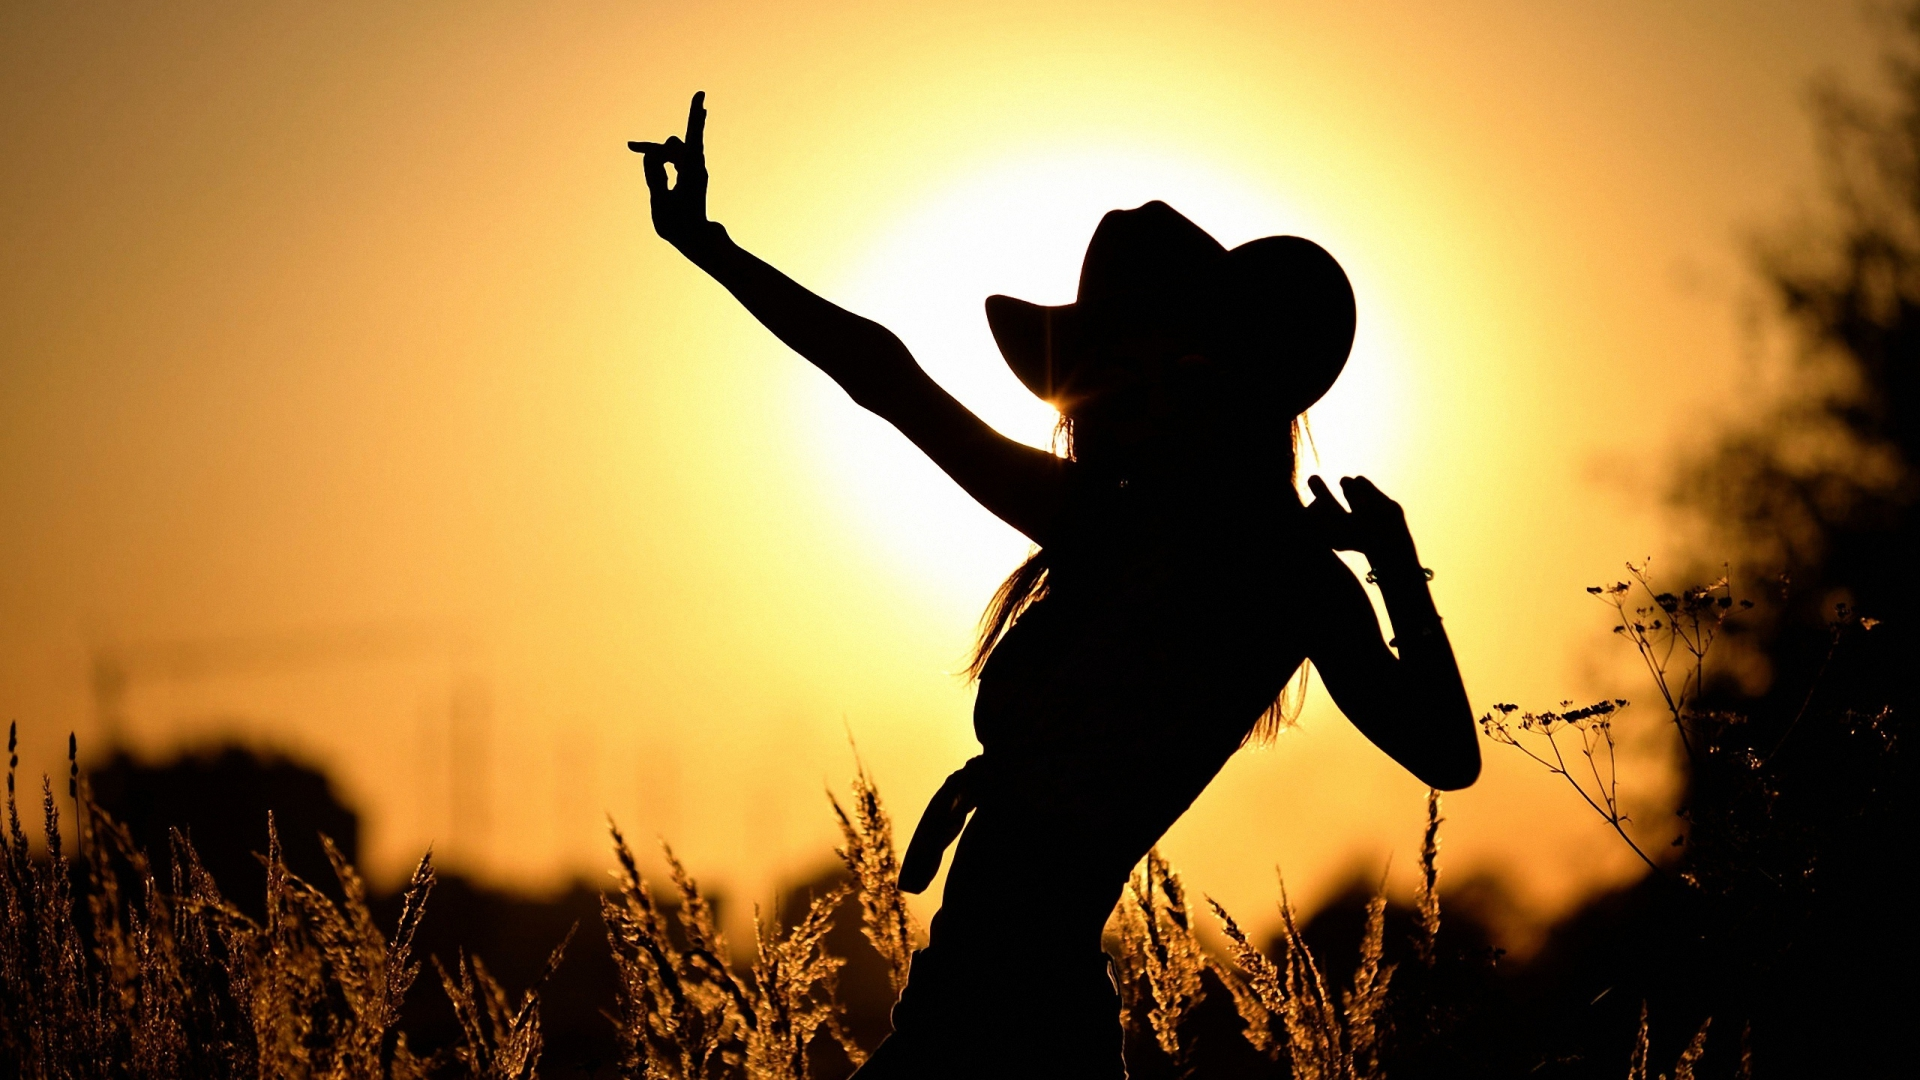 Guitar Girl Silhouete Wallpaper Iphone Cowgirl Hd Wallpaper Background Image 1920x1080 Id